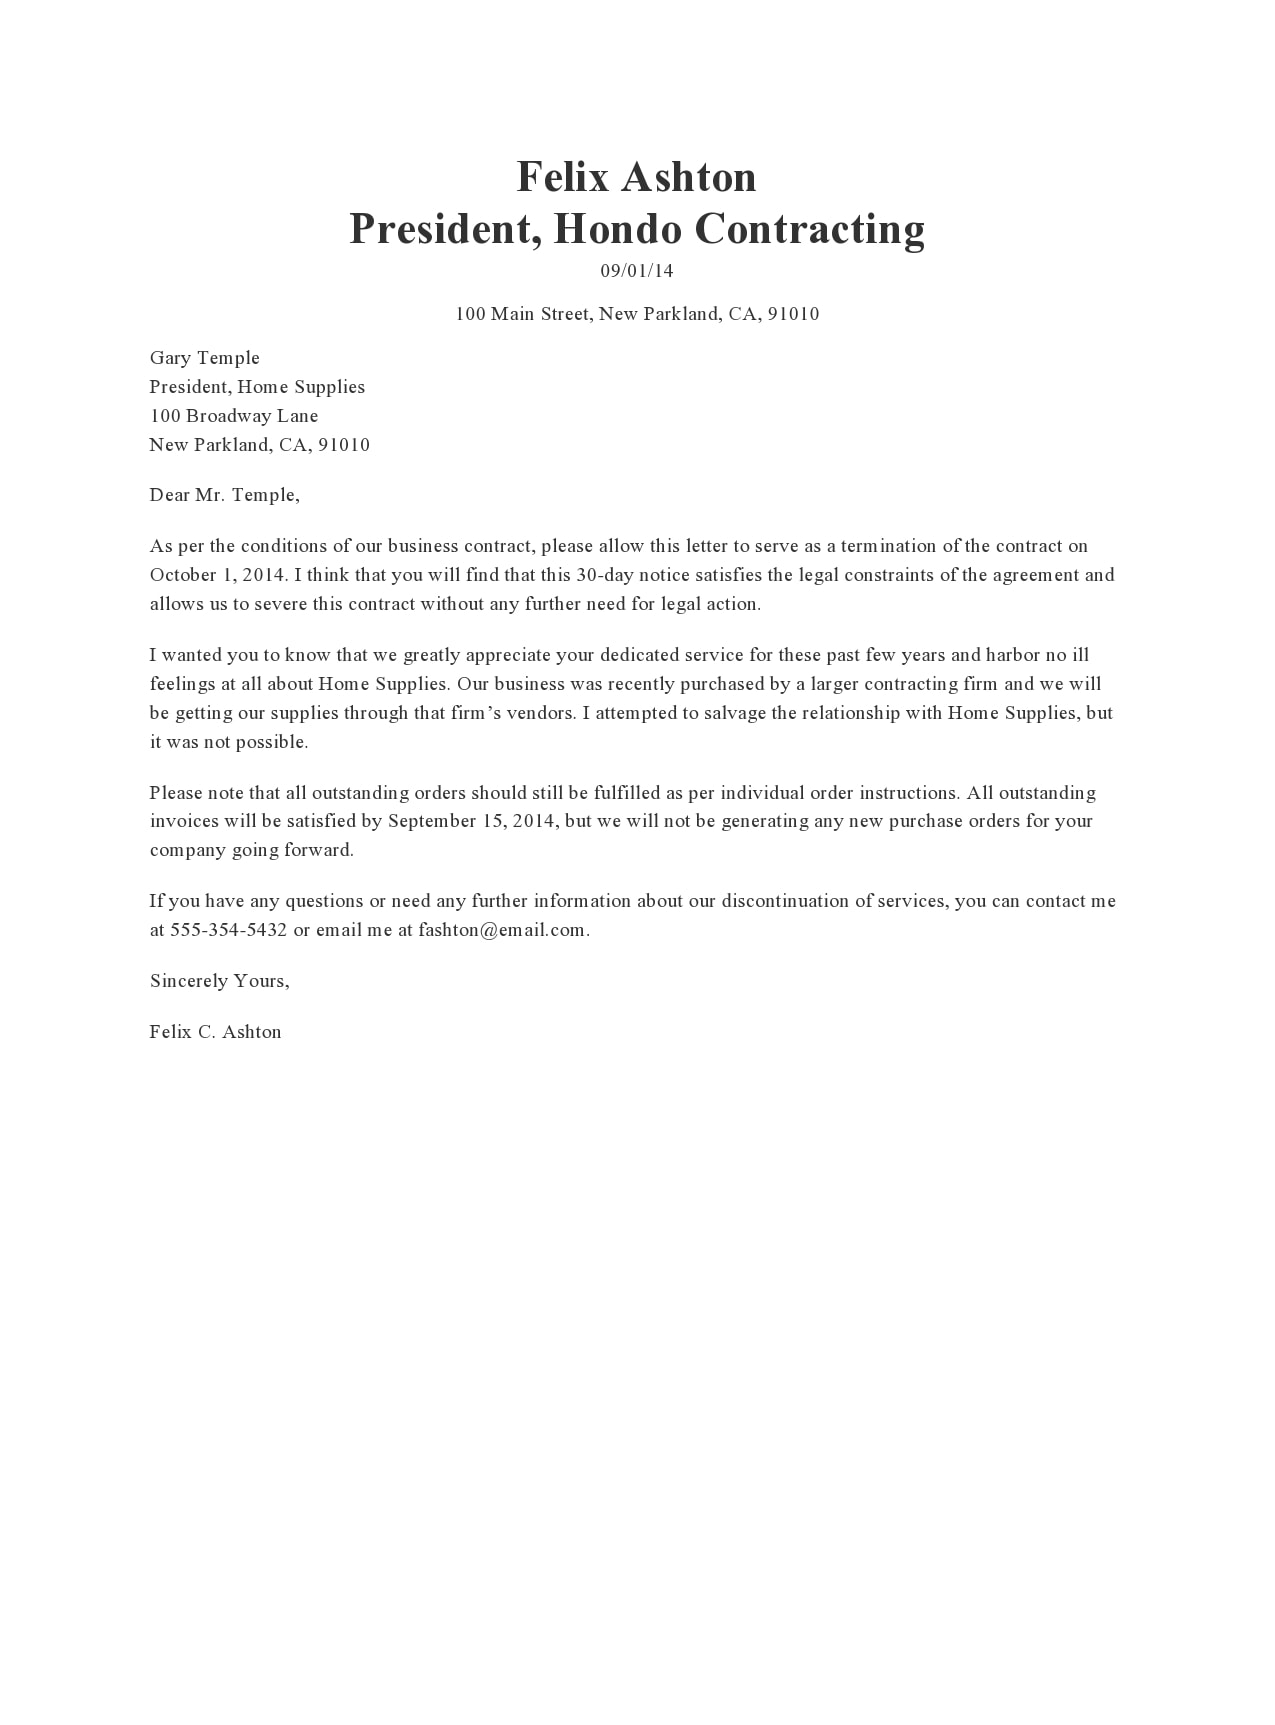 Independent Contractor Resignation Letter from templatearchive.com